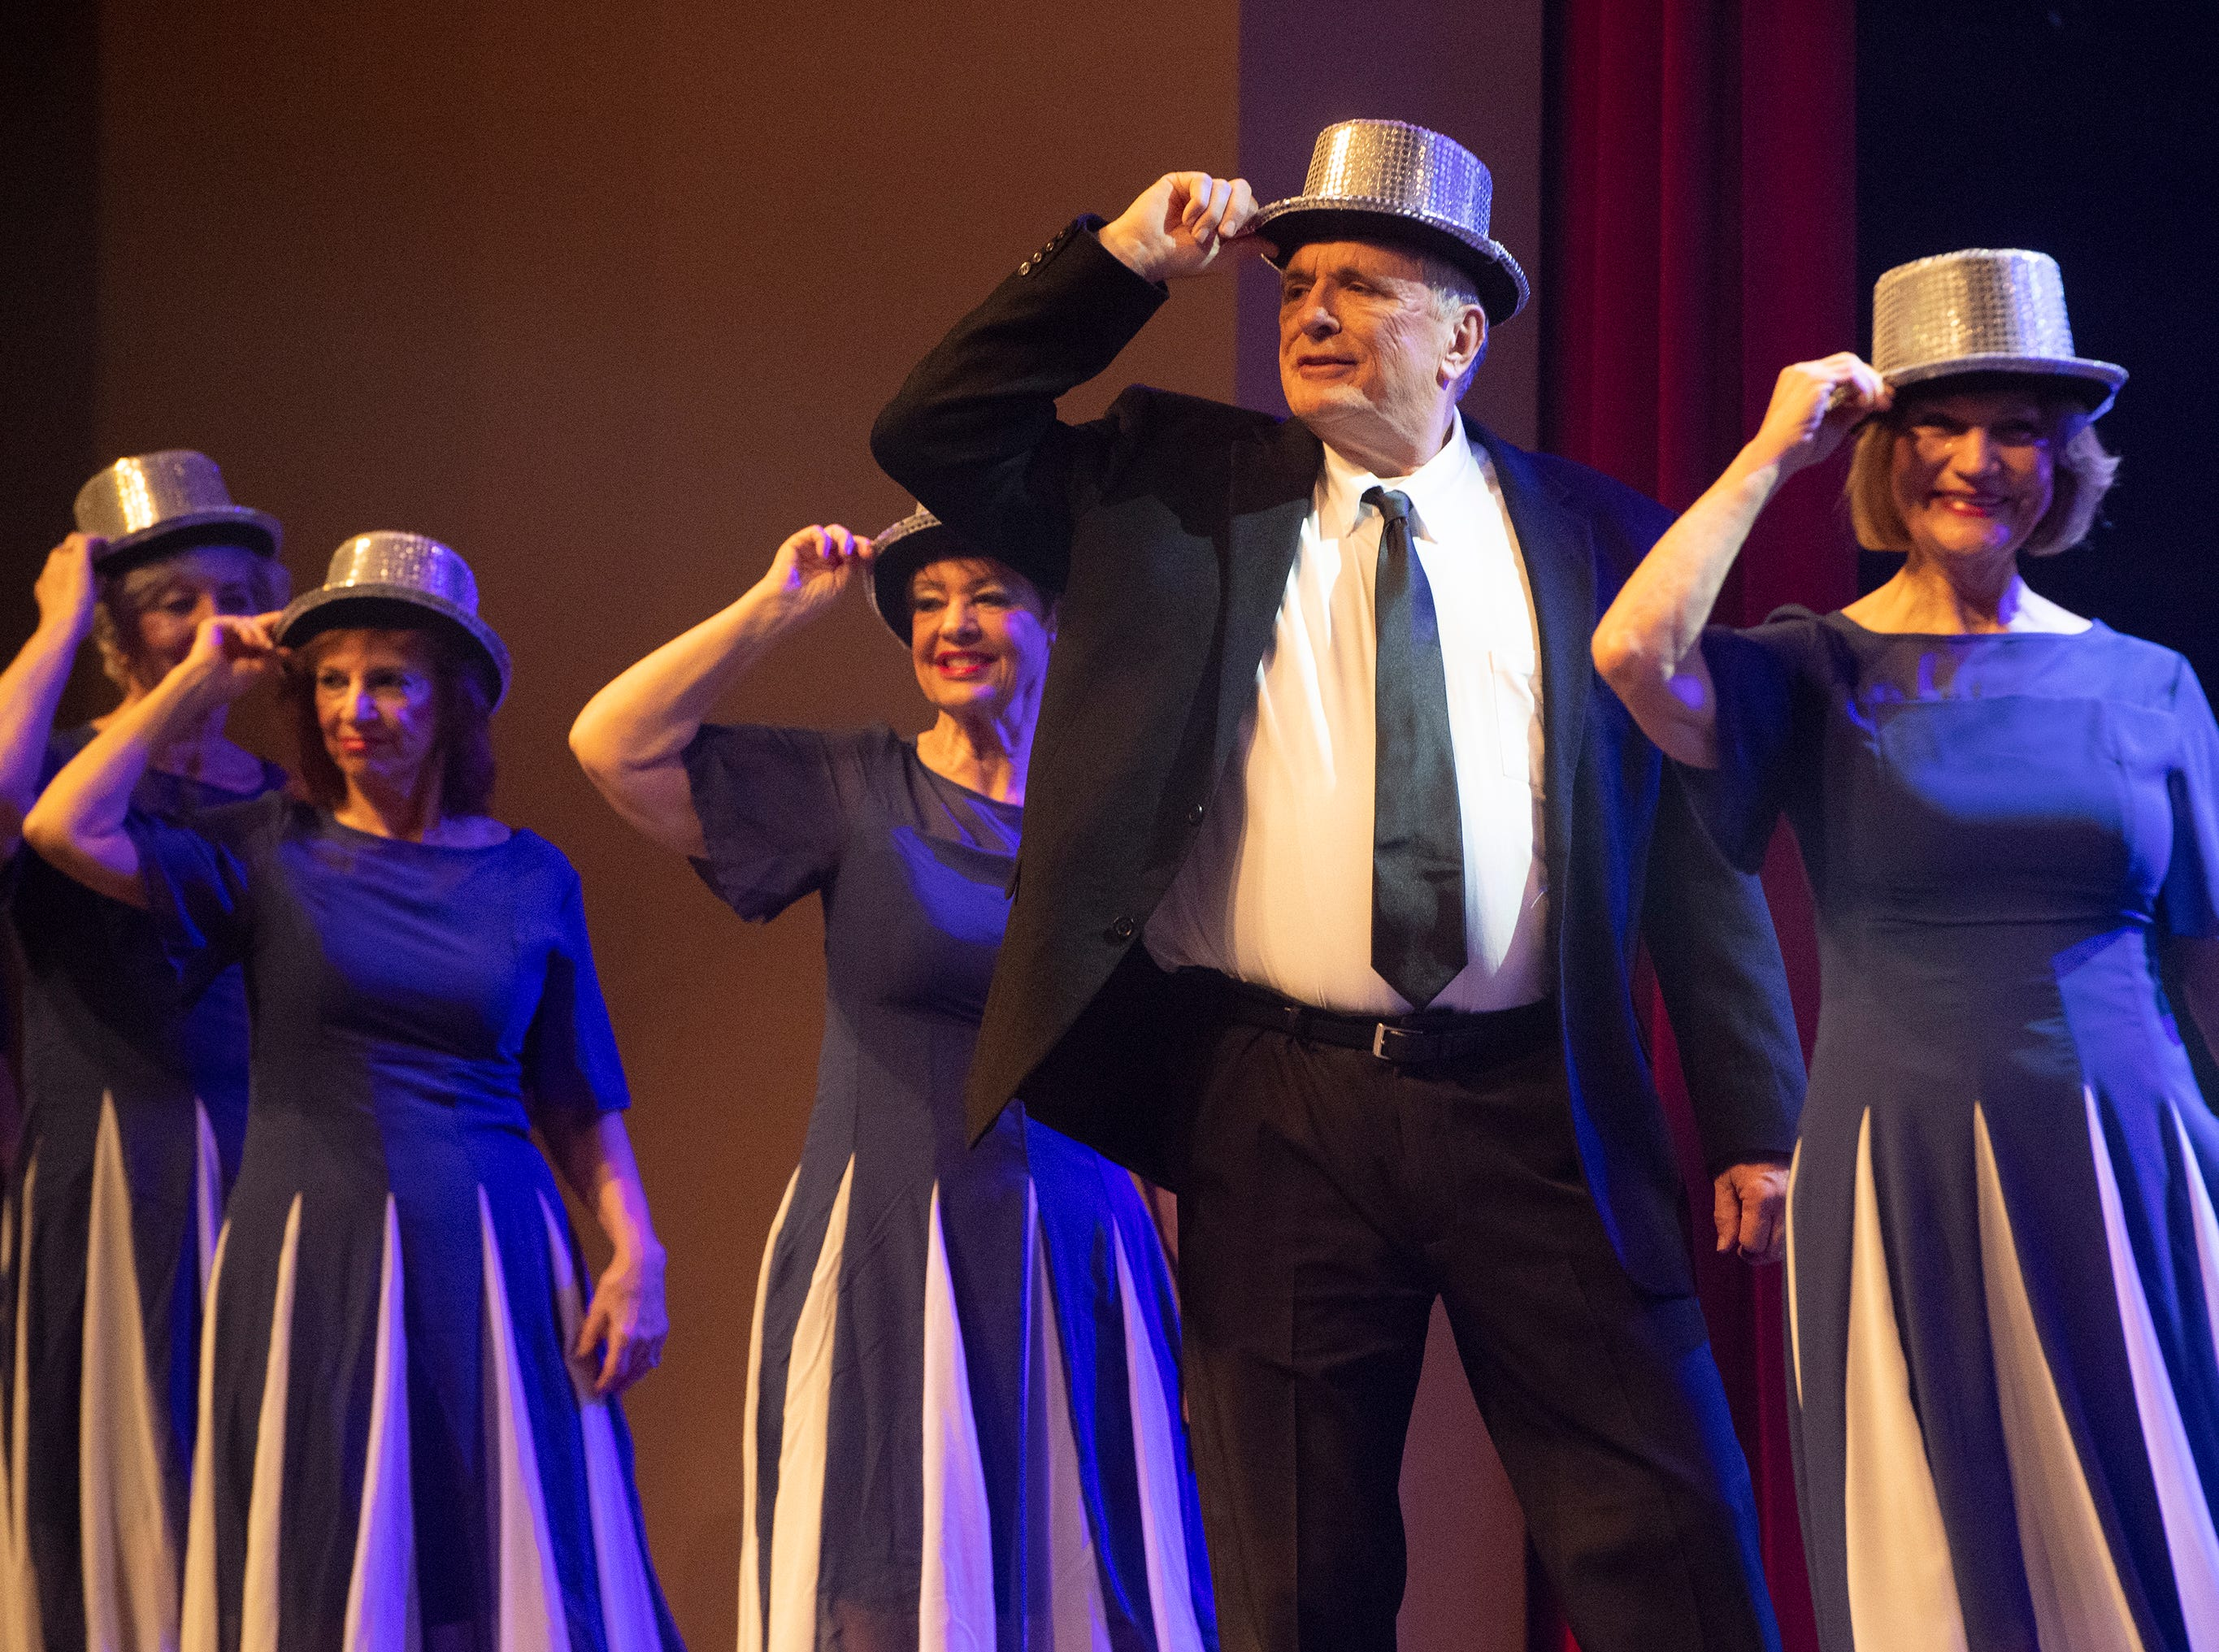 The Anderson Senior Follies show, A Class Act, took place at Anderson University's Henderson Auditorium Saturday, Mar. 16, 2019.